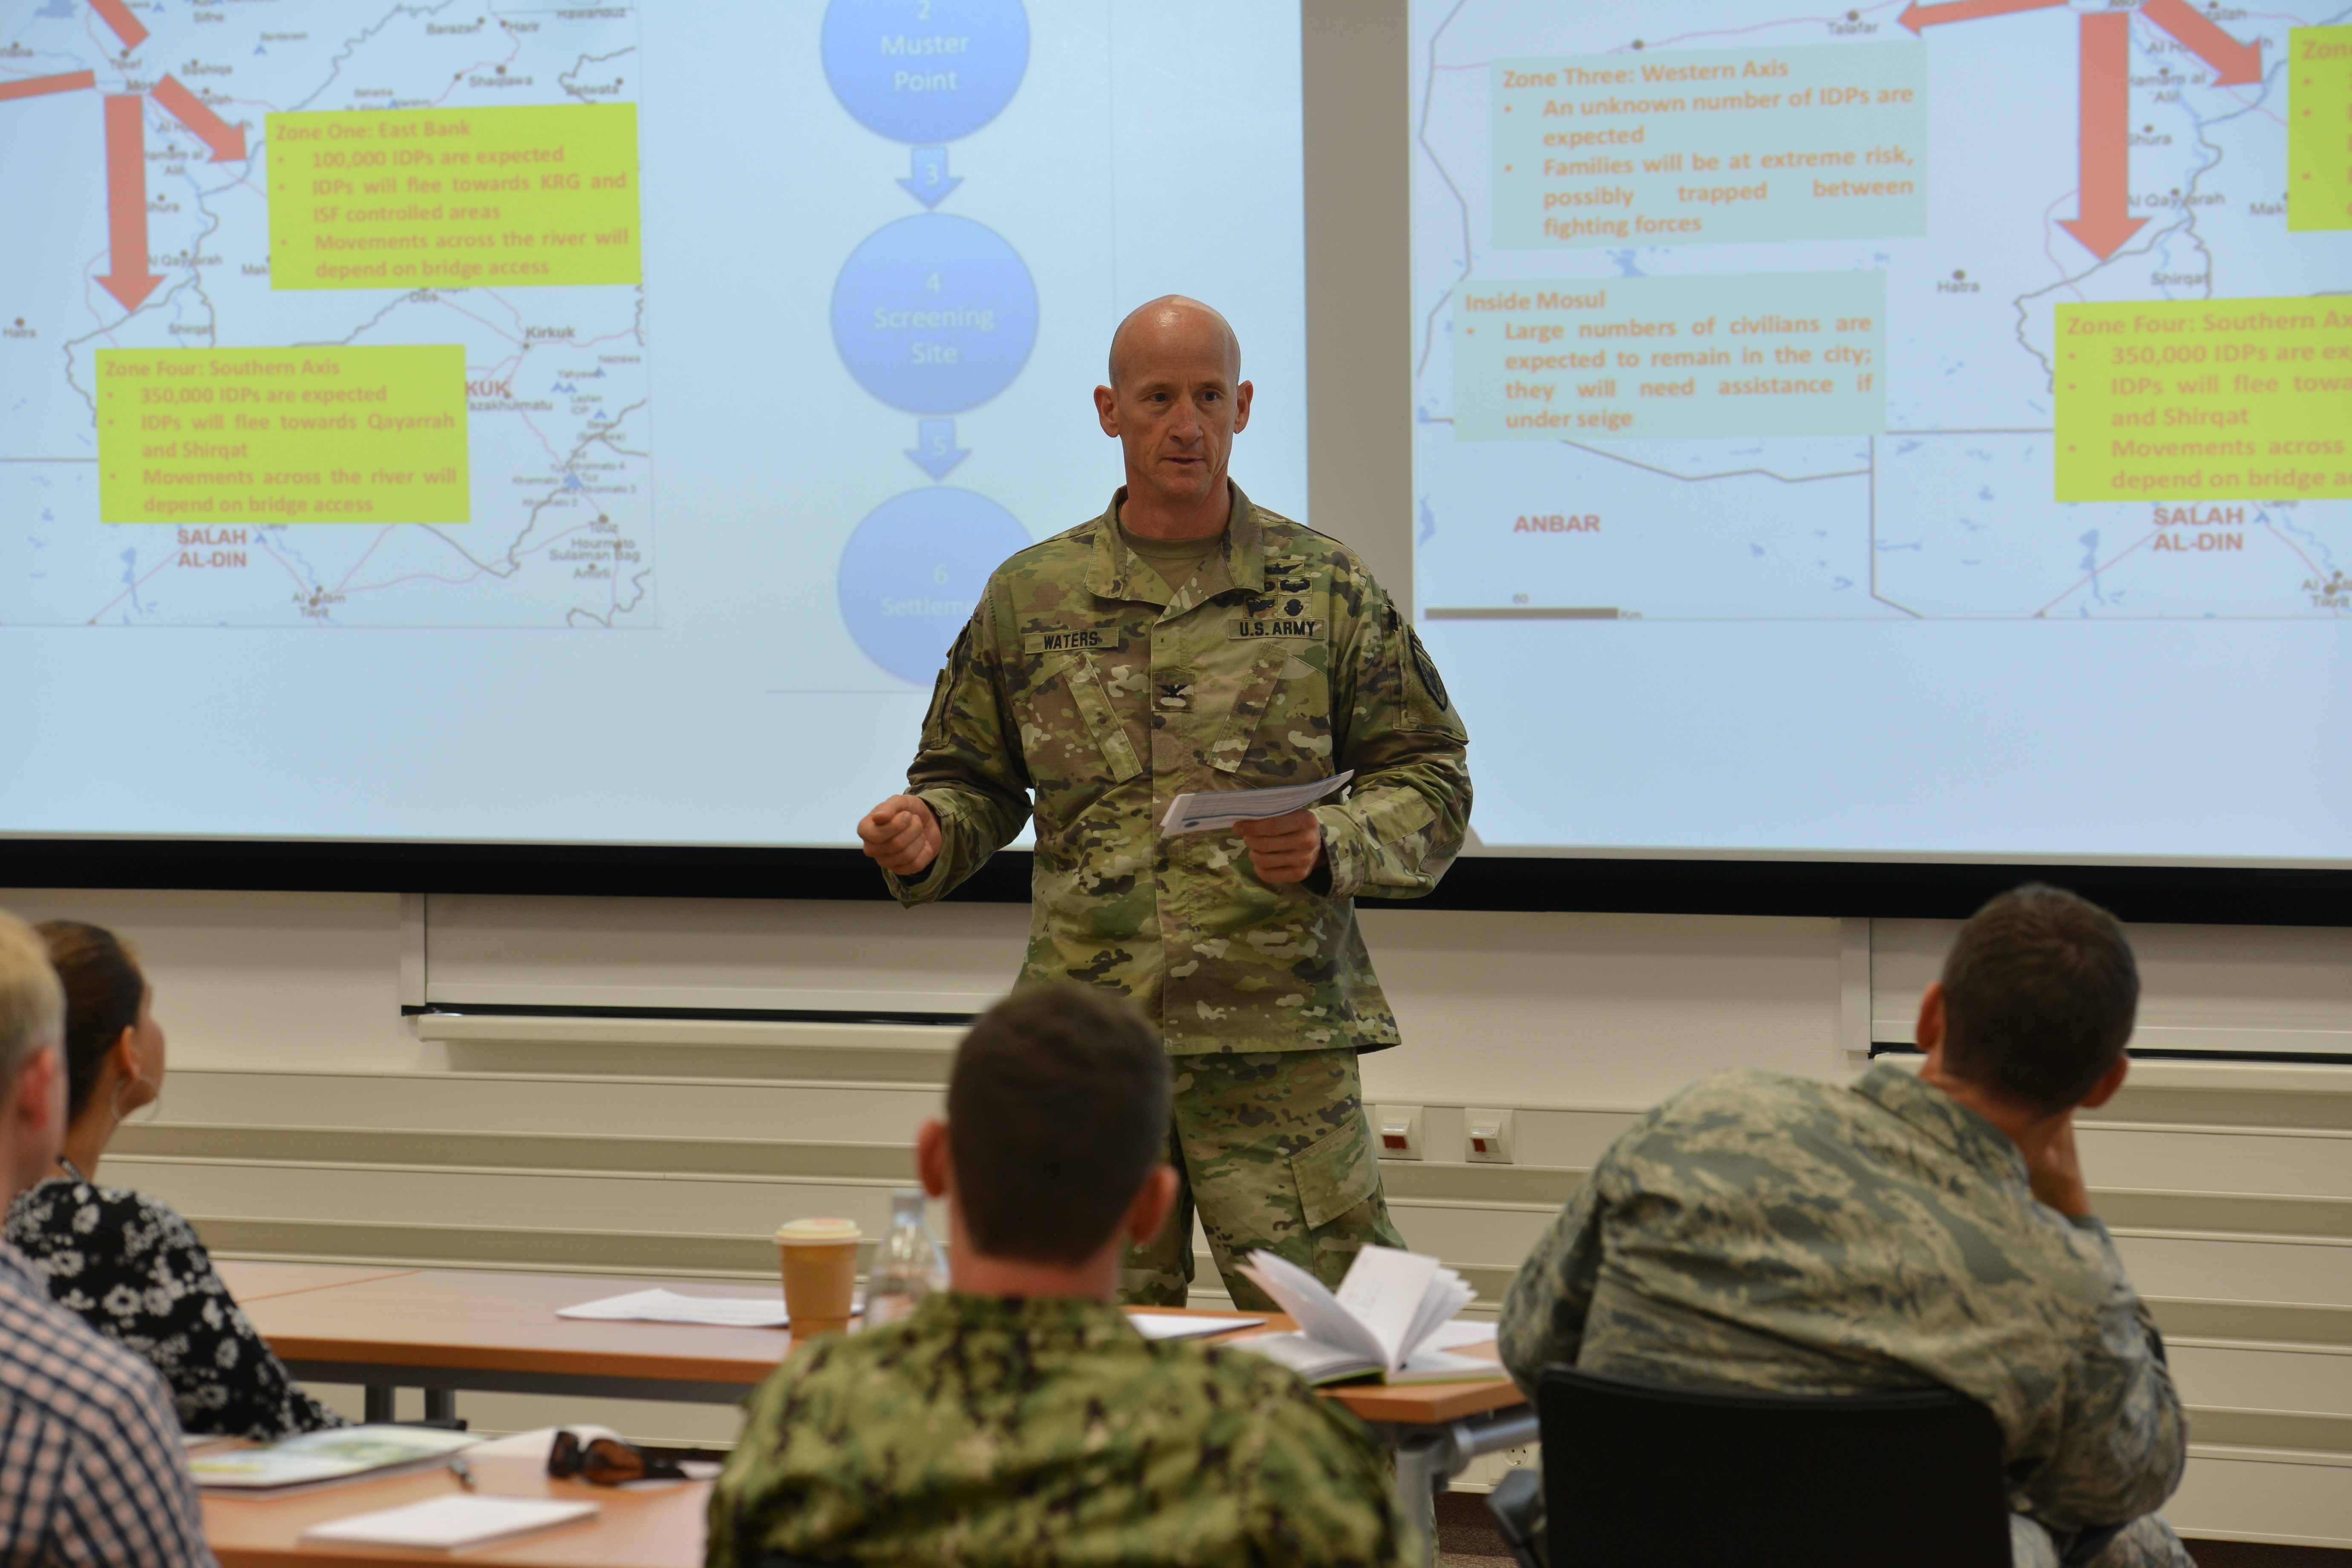 STUTTGART, Germany—Col Rodger Waters, U.S. European Command, Directorate of Resources Assessments J5, addresses the participants at the Humanitarian Assistance Response Training Course, at the Kelley Special Events Center, Stuttgart, Germany, June 25, 2019. AFRICOM held the HART event June 25-28, 2019, to train AFRICOM staff members on humanitarian assistance and disaster relief response. (Photo by Staff Sgt. Grady Jones, Public Affairs, AFRICOM)